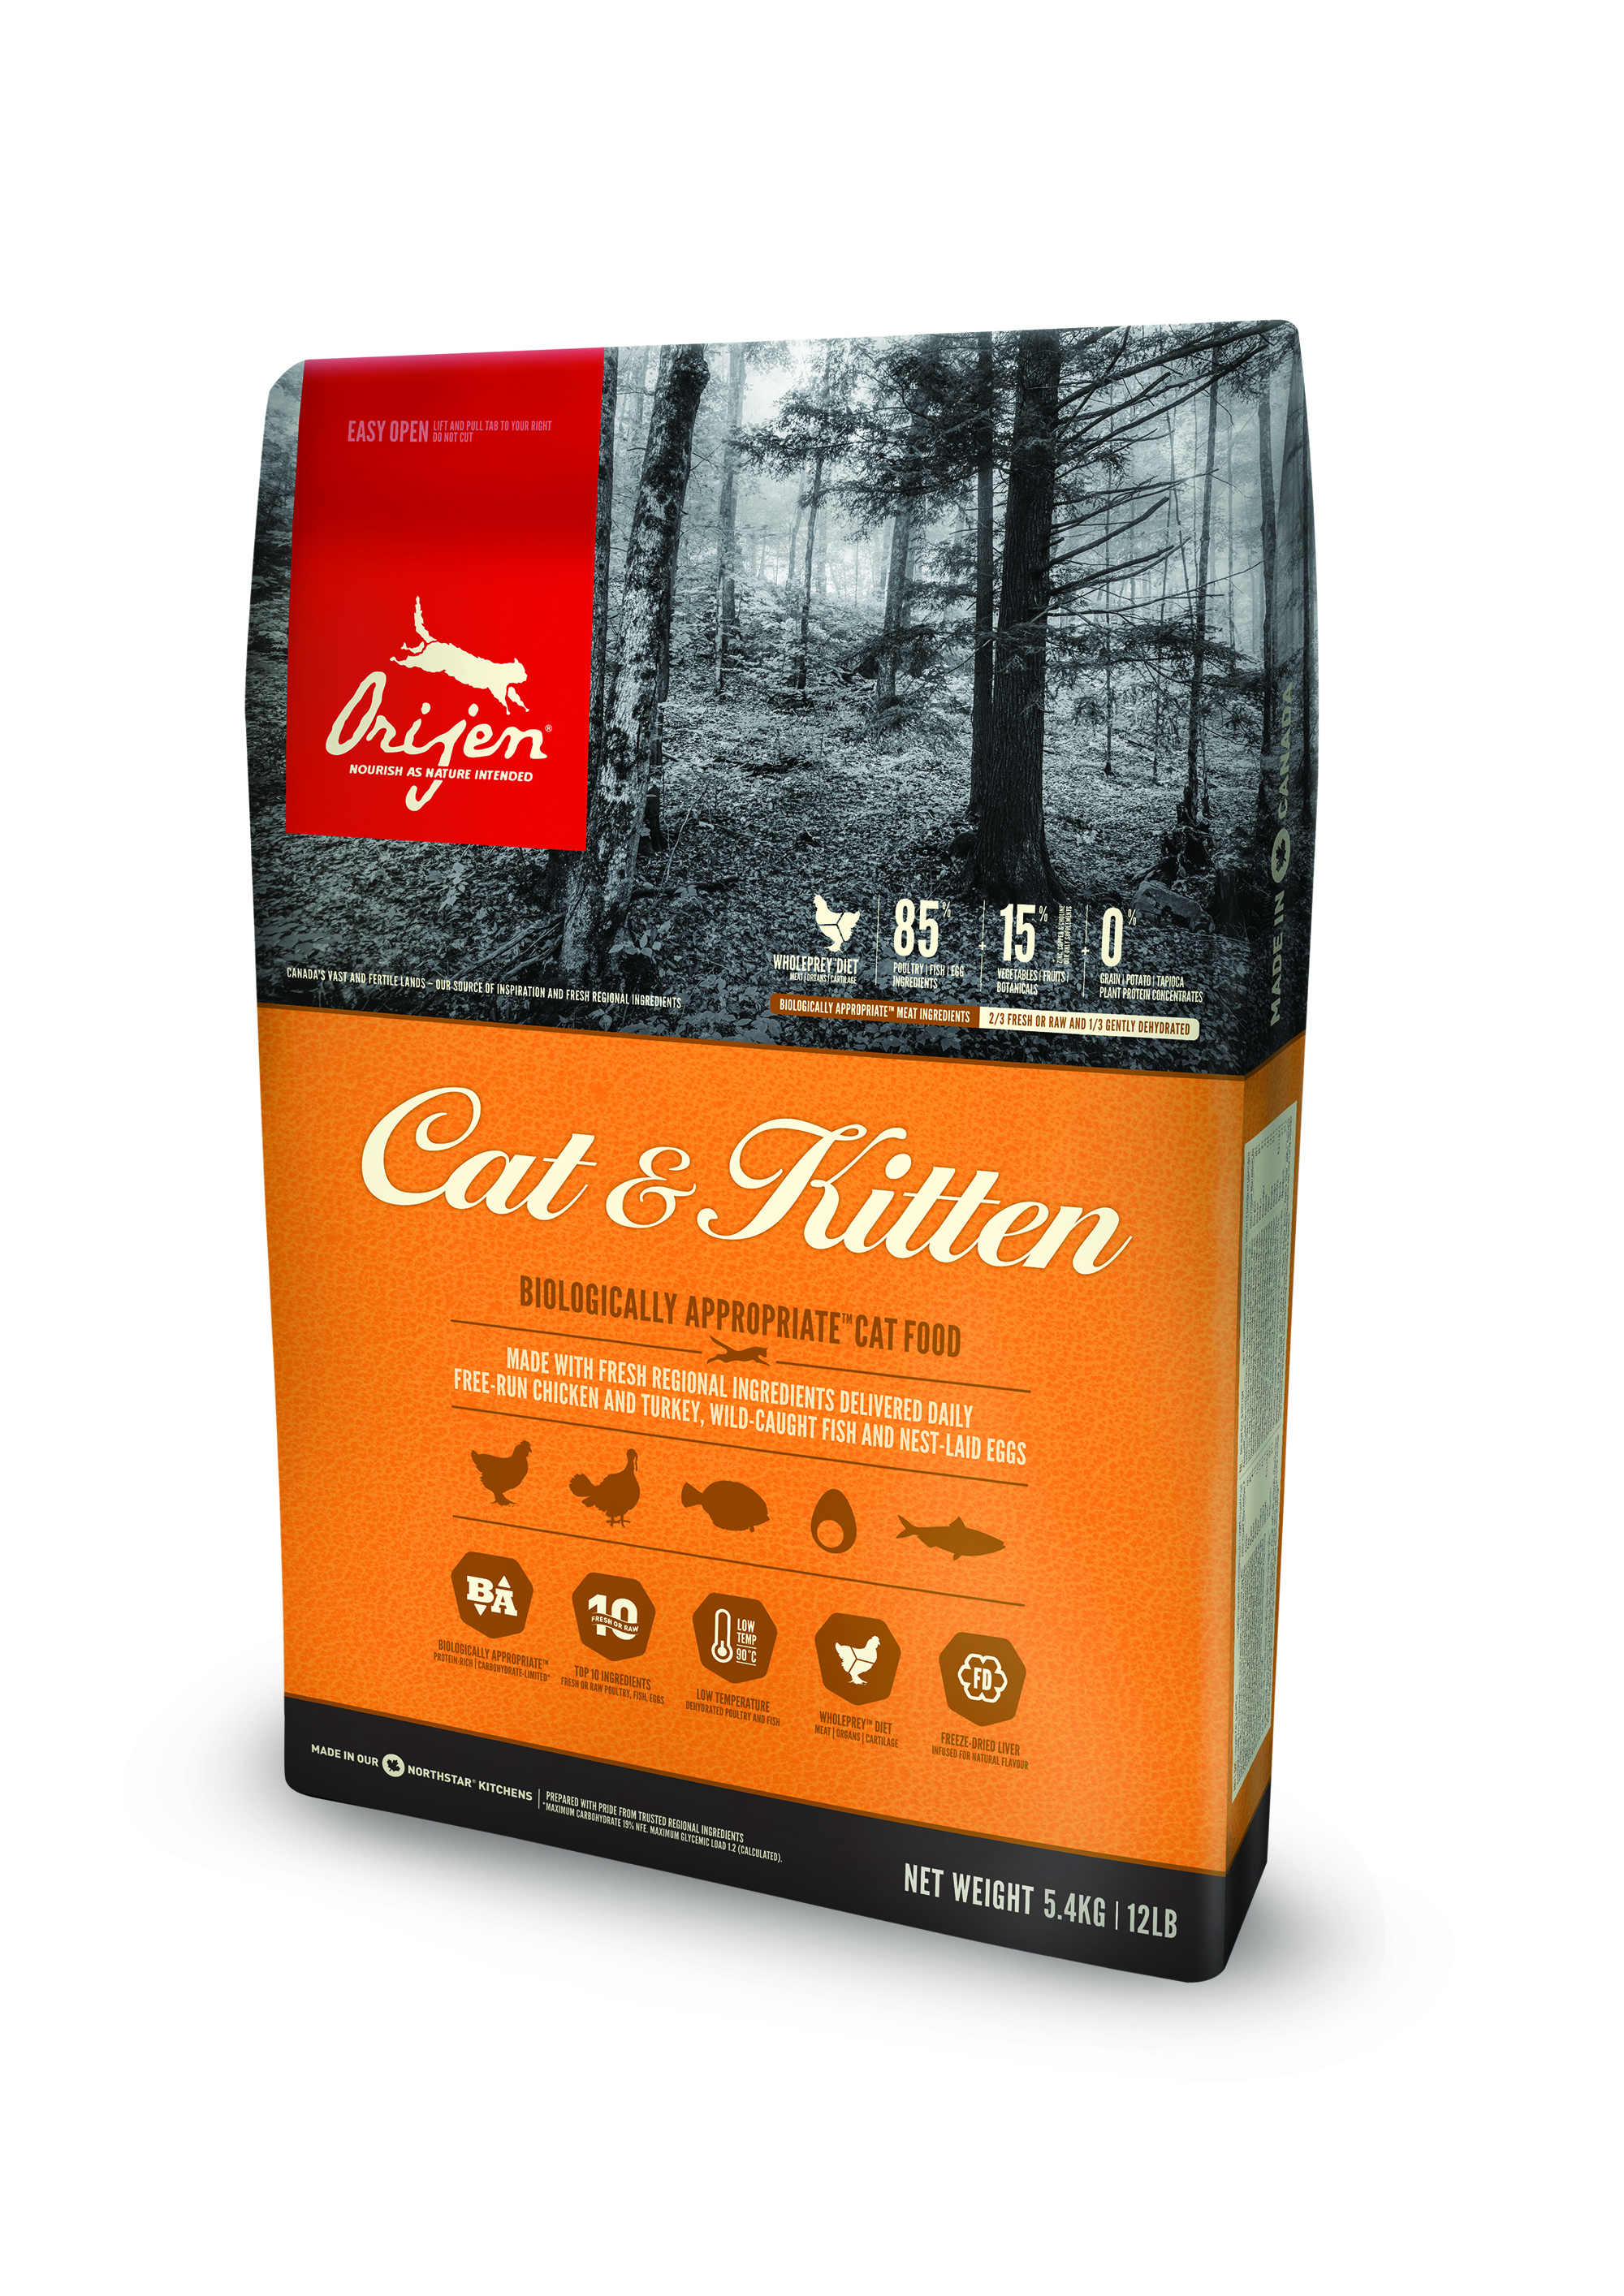 Orijen Cat & Kitten Food - 5.4 Kg